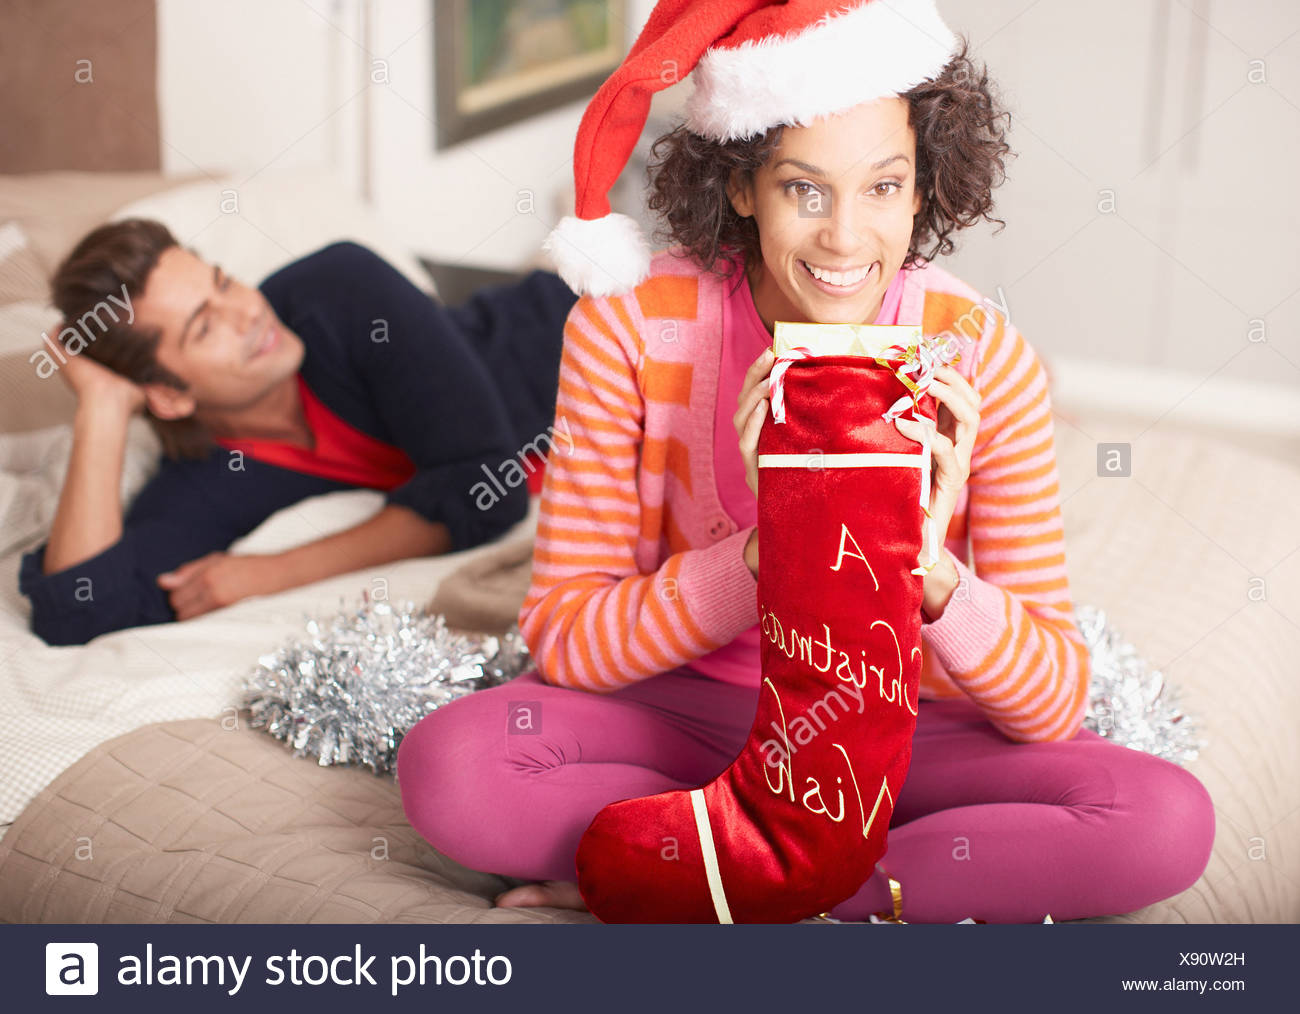 Woman holding Christmas stocking - Stock Image